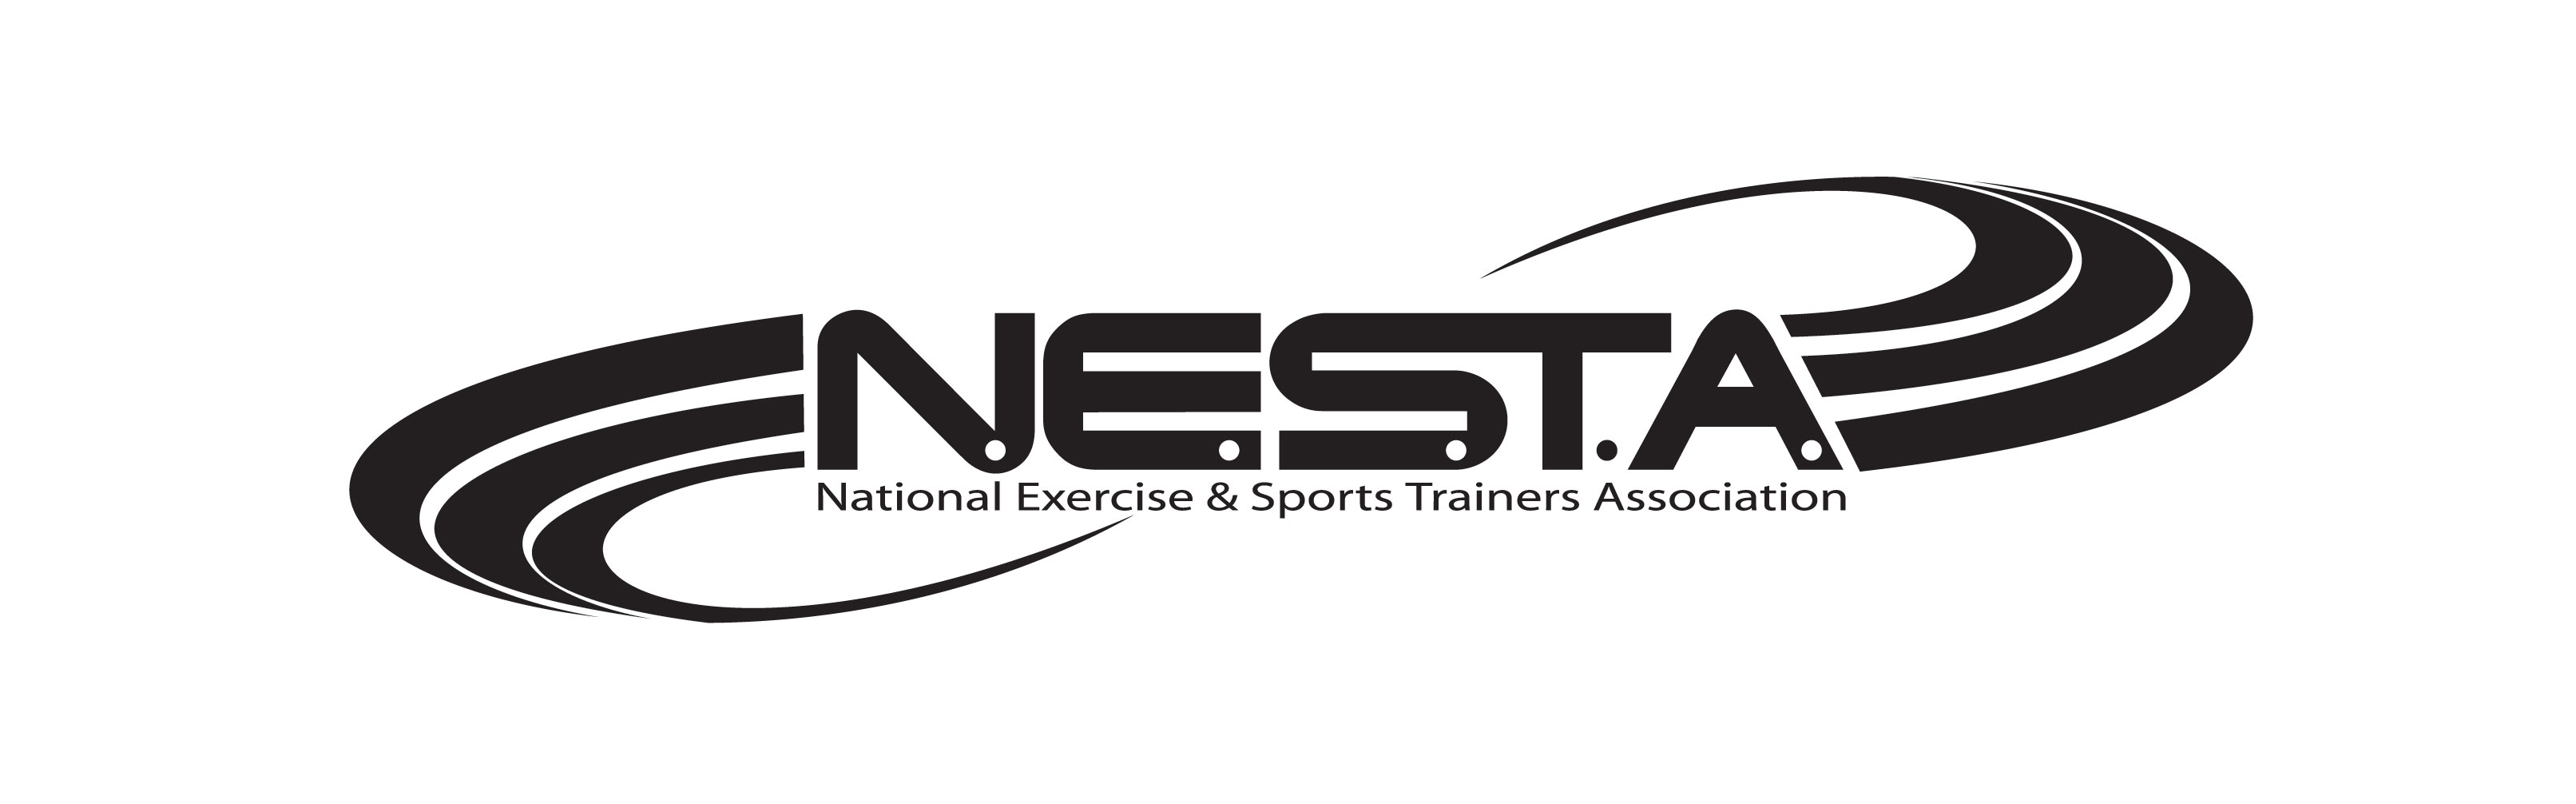 Nesta Launches Enhanced Website Focused On Personal Training